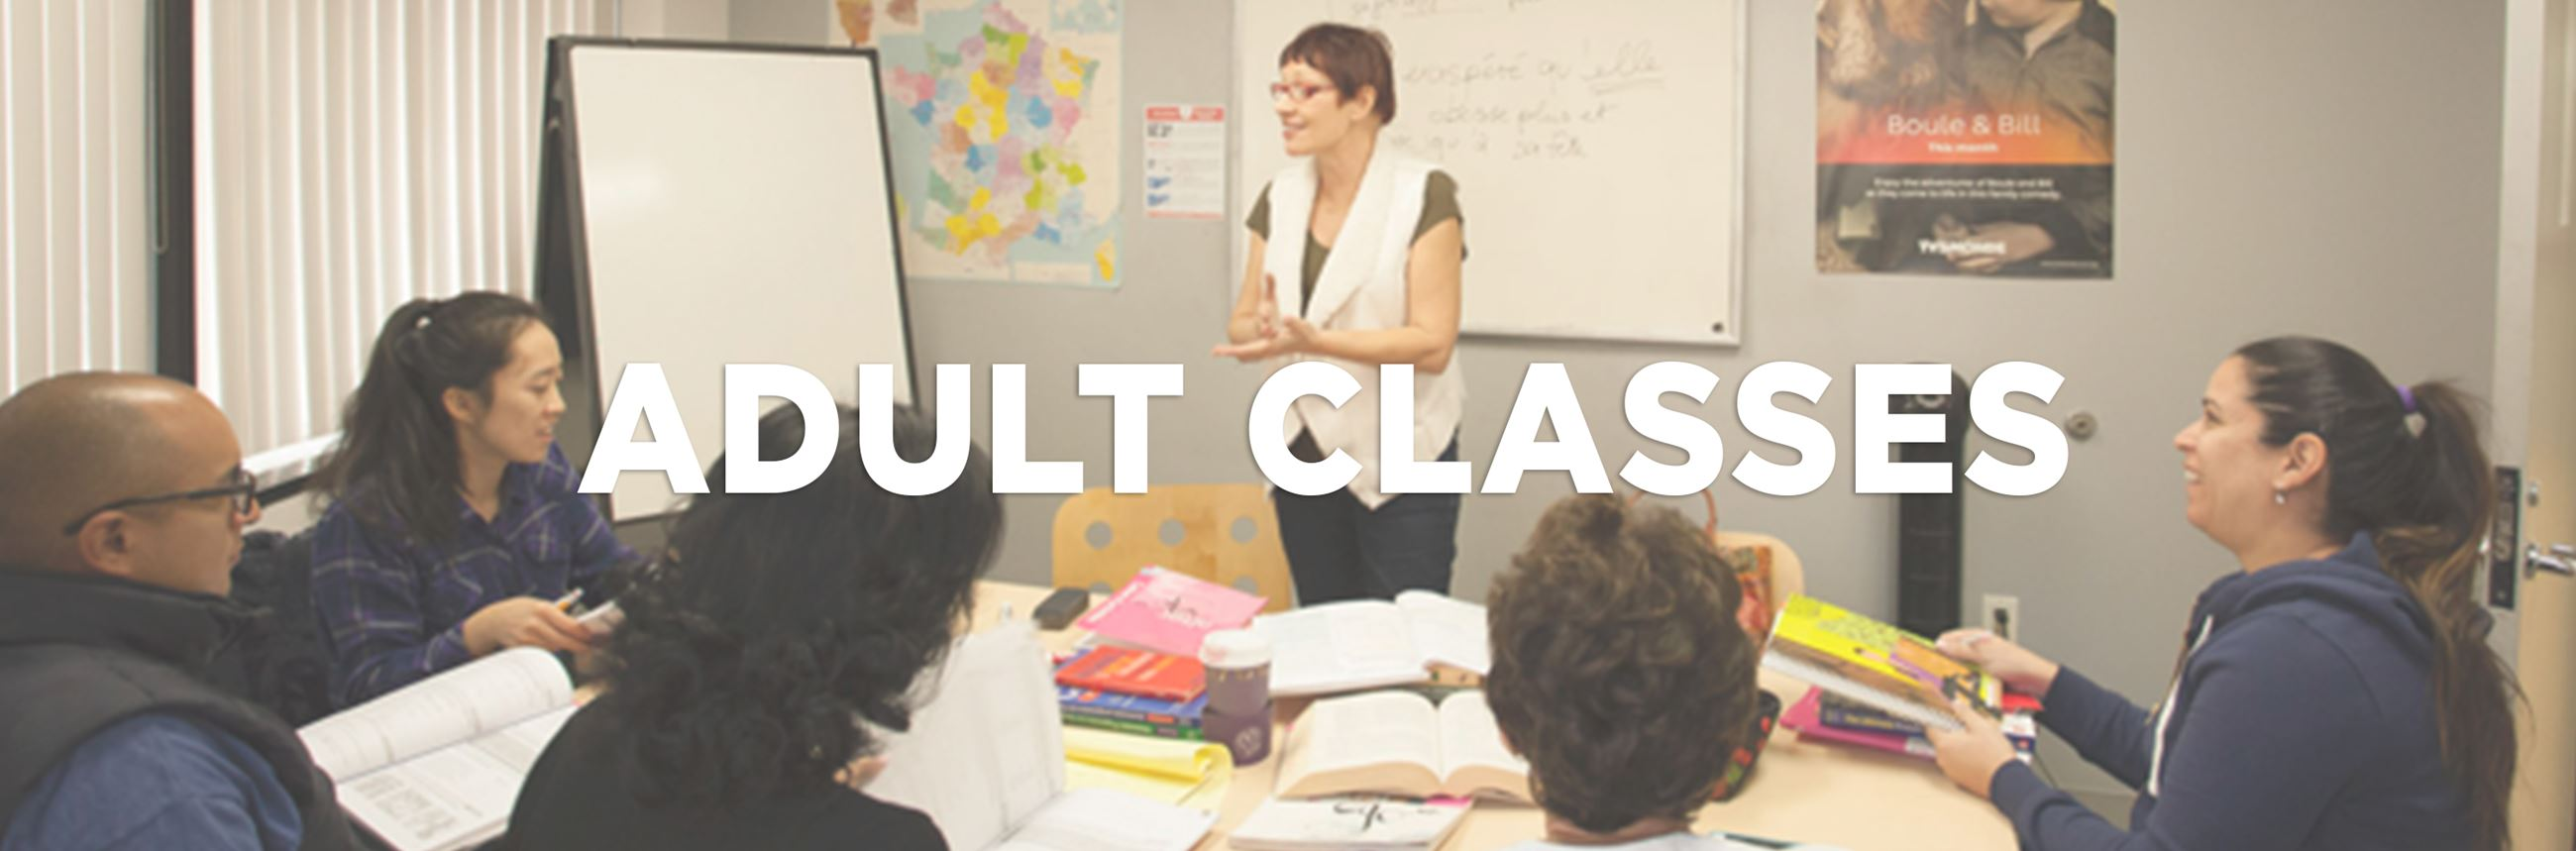 Adult Classes Banner